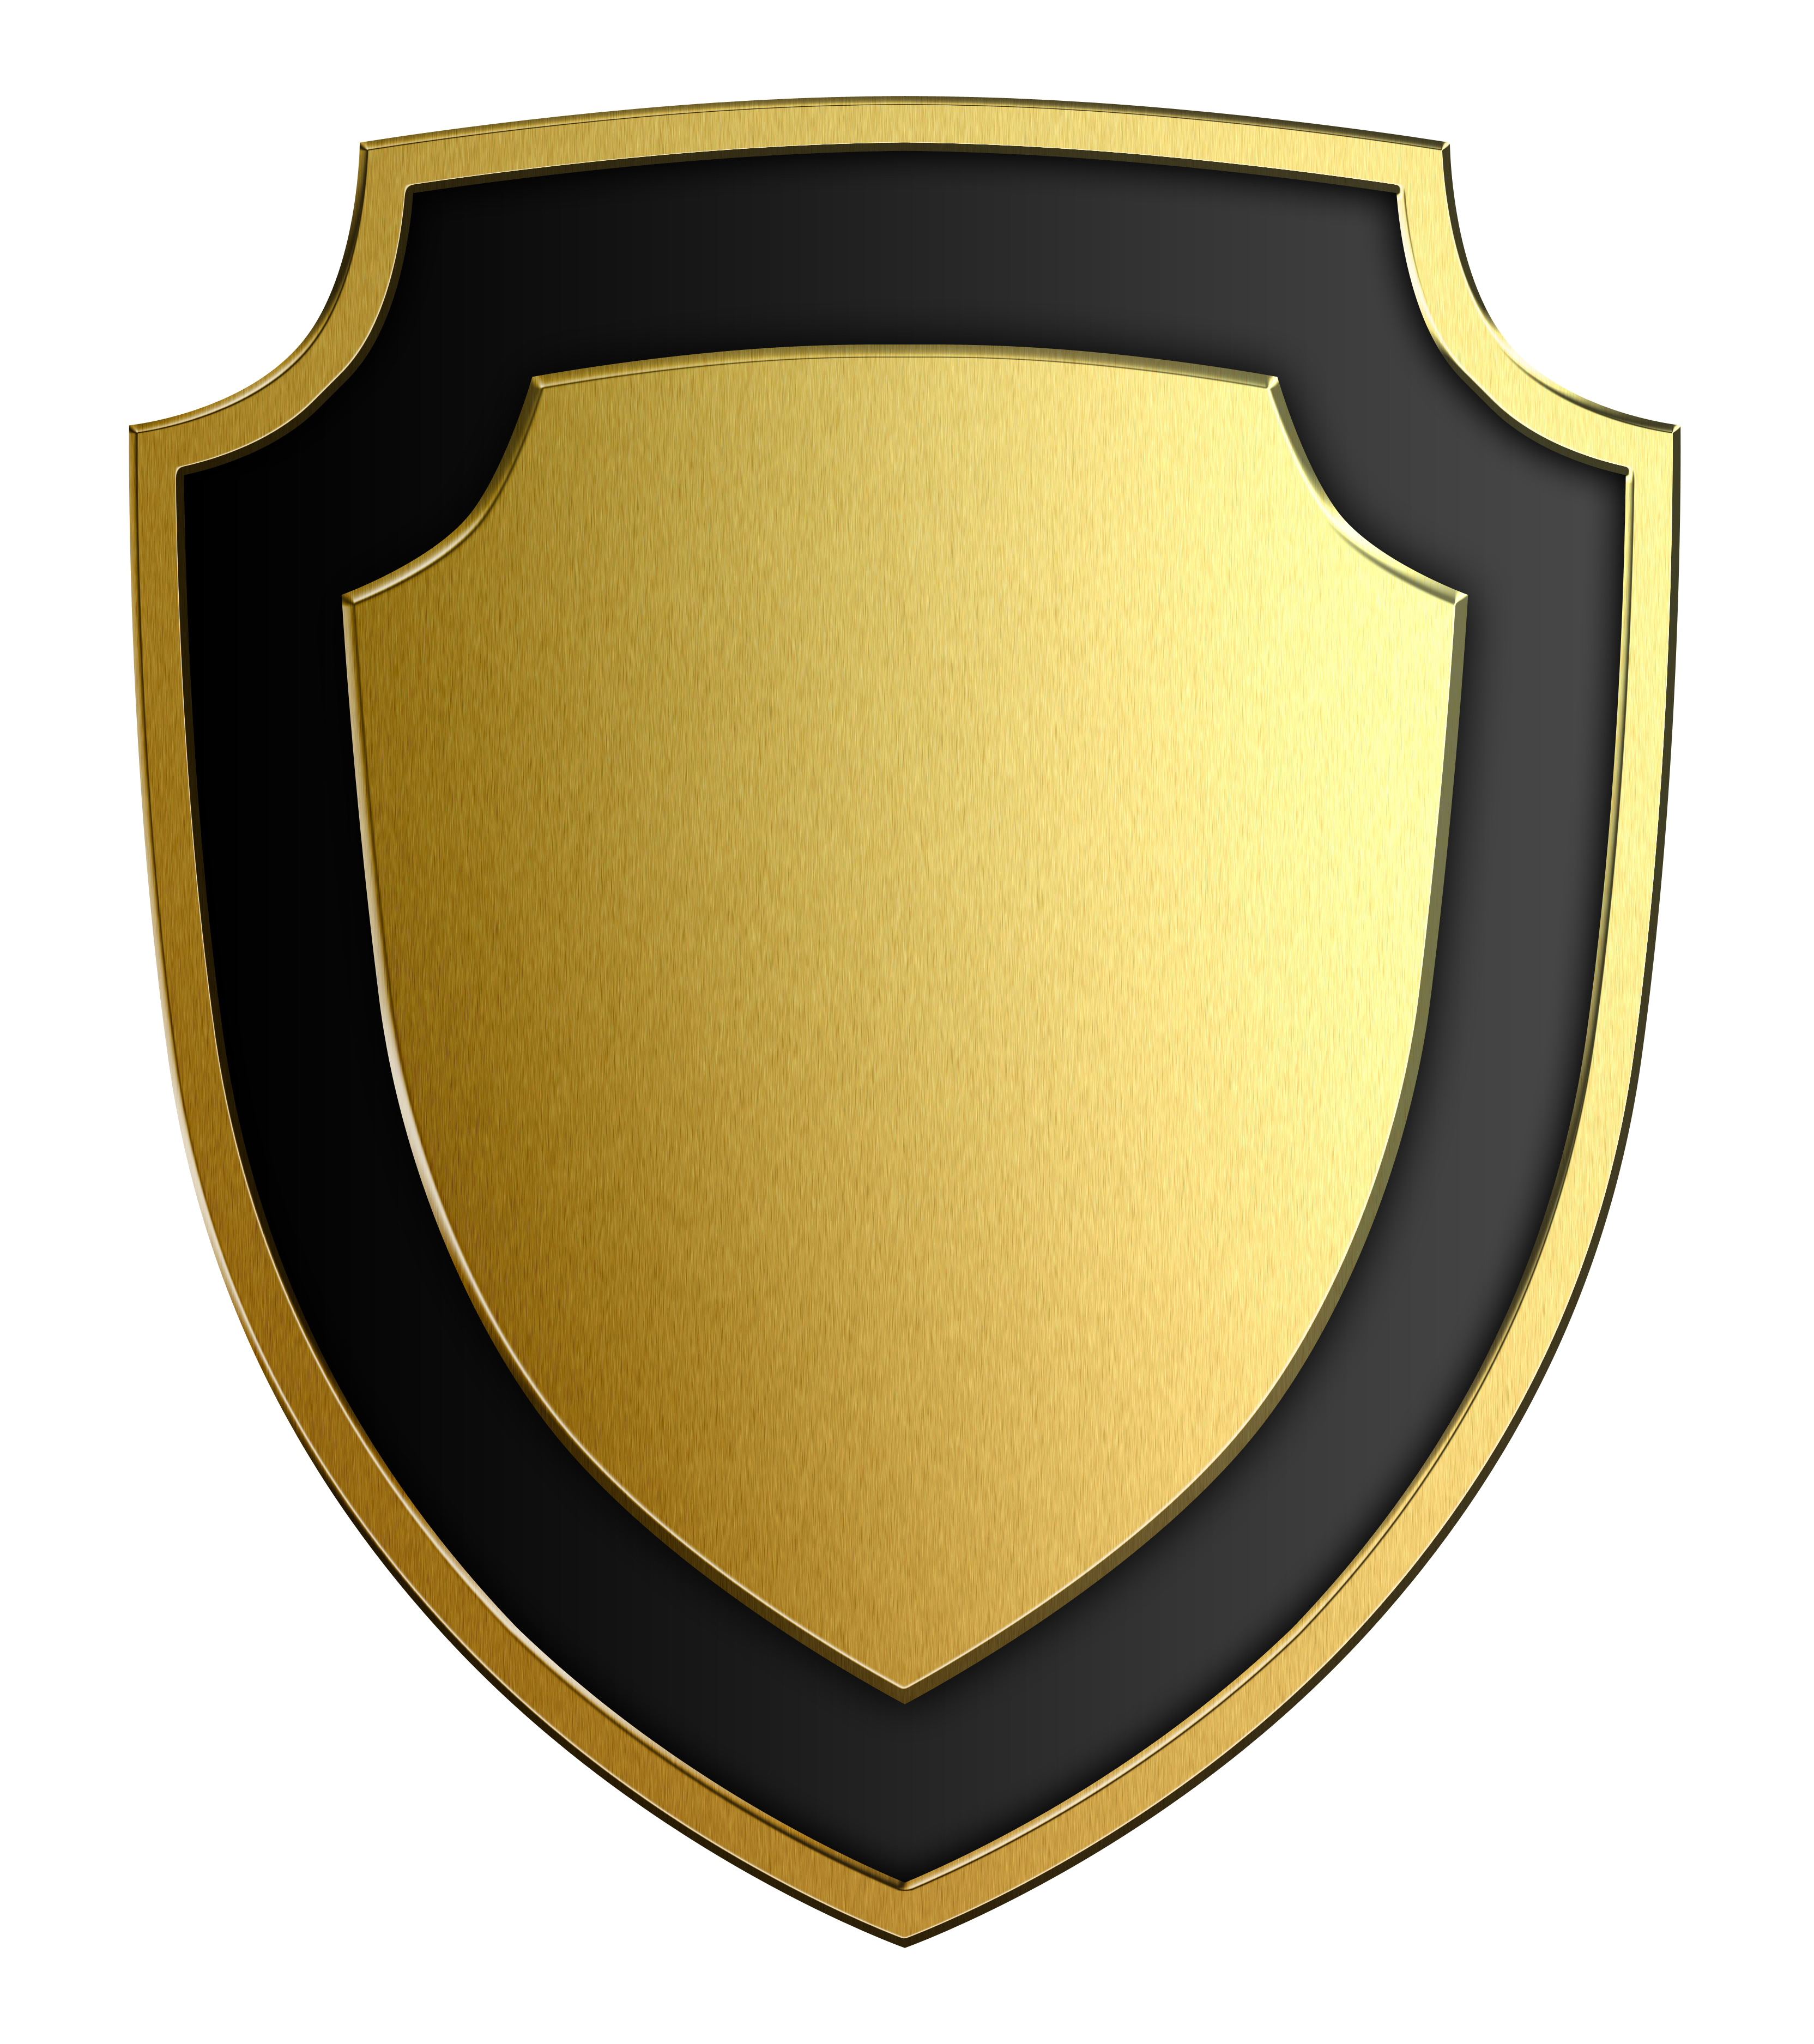 shield PNG image, free picture download - Shield HD PNG - Free PNG HD For March